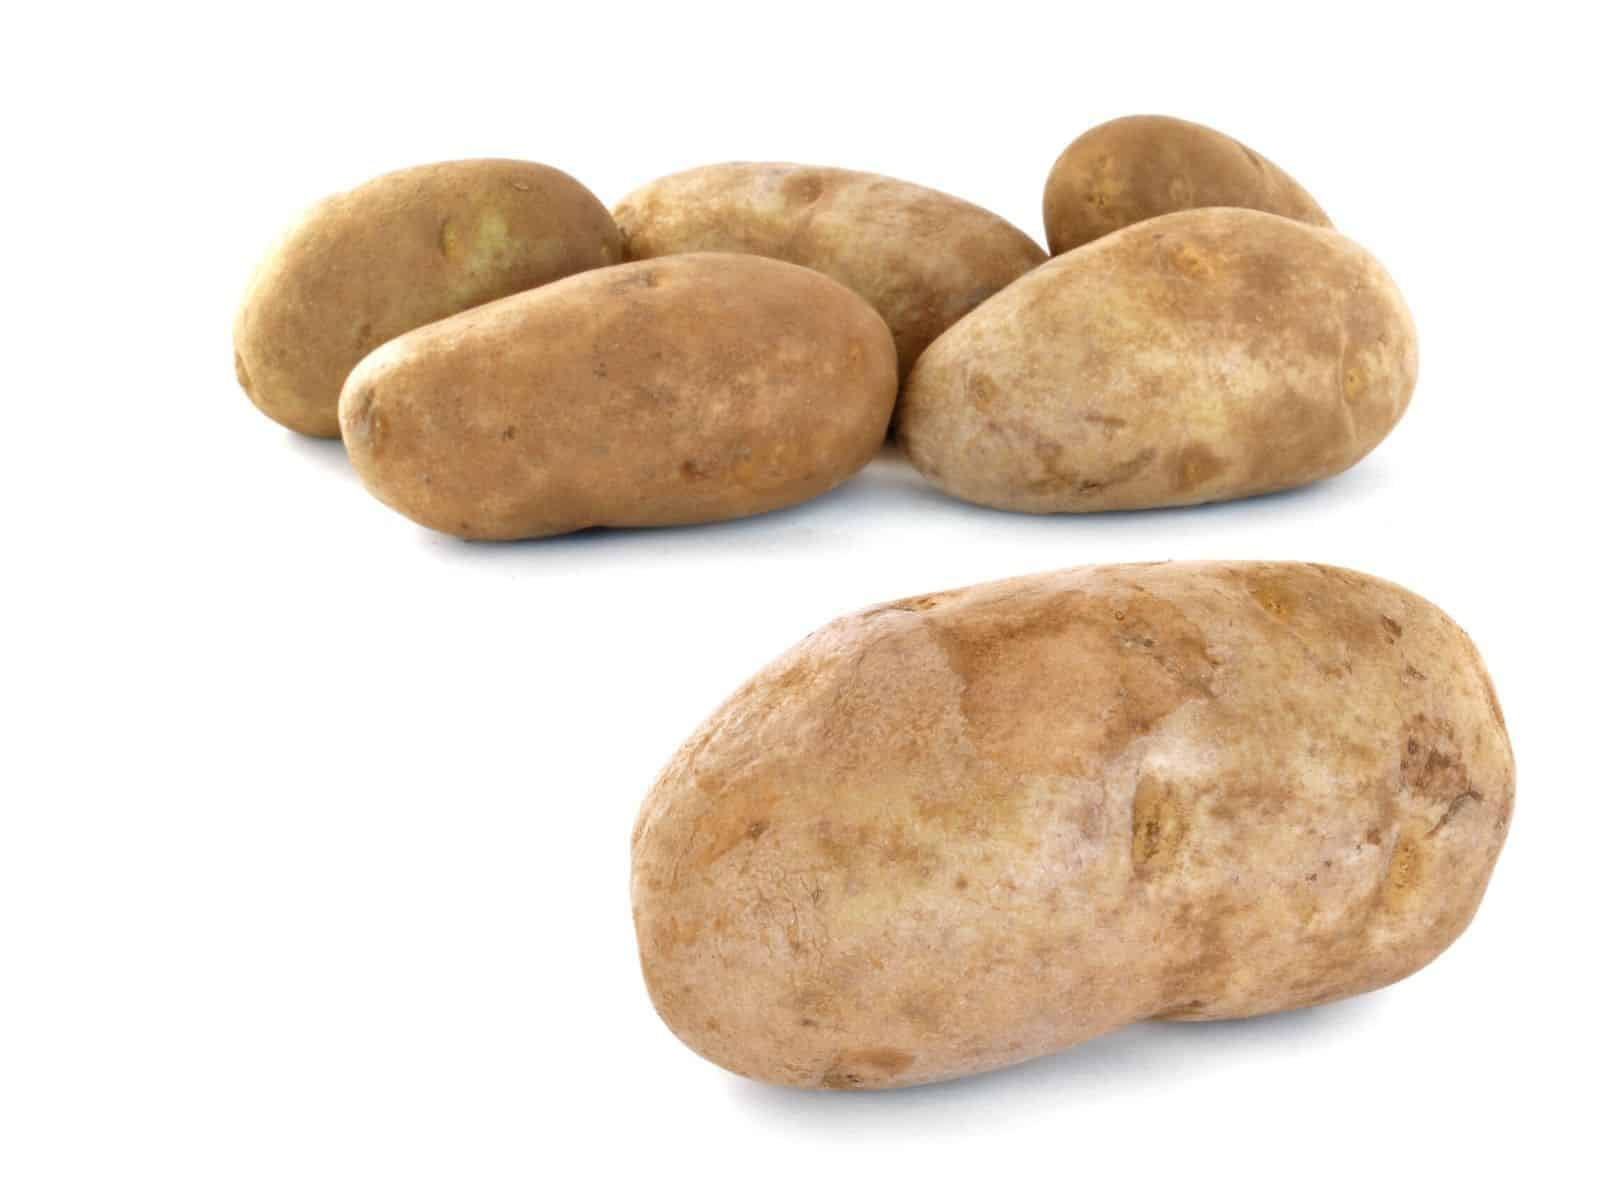 russet potatoes on a white background.